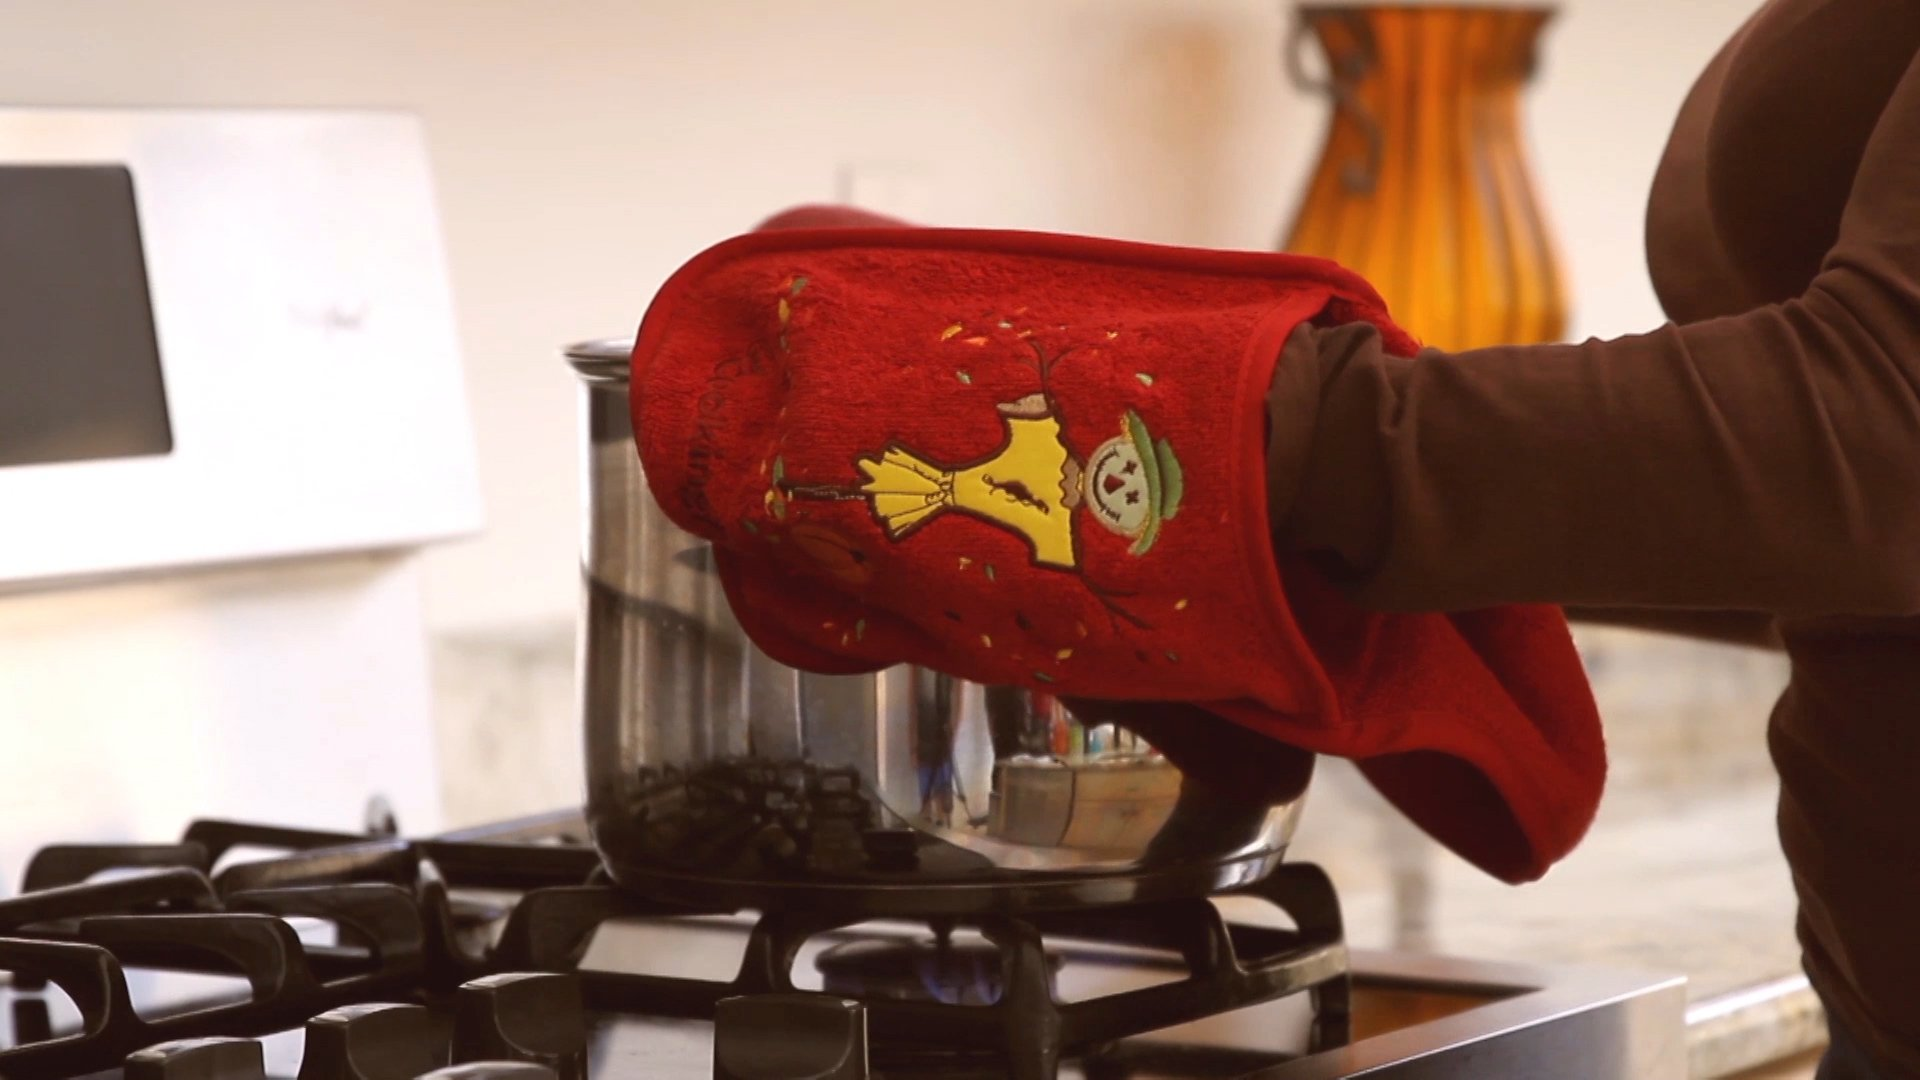 Campanelli's Cooking Buddy - Professional Grade All-In-One Pot Holder, Hand Towel, Lid Grip, Tool Caddy, and Trivet. Heat Resistant up to 500ºF! As Seen On QVC. (Limited Edition: Harvest Brown) by Campanelli Products (Image #4)